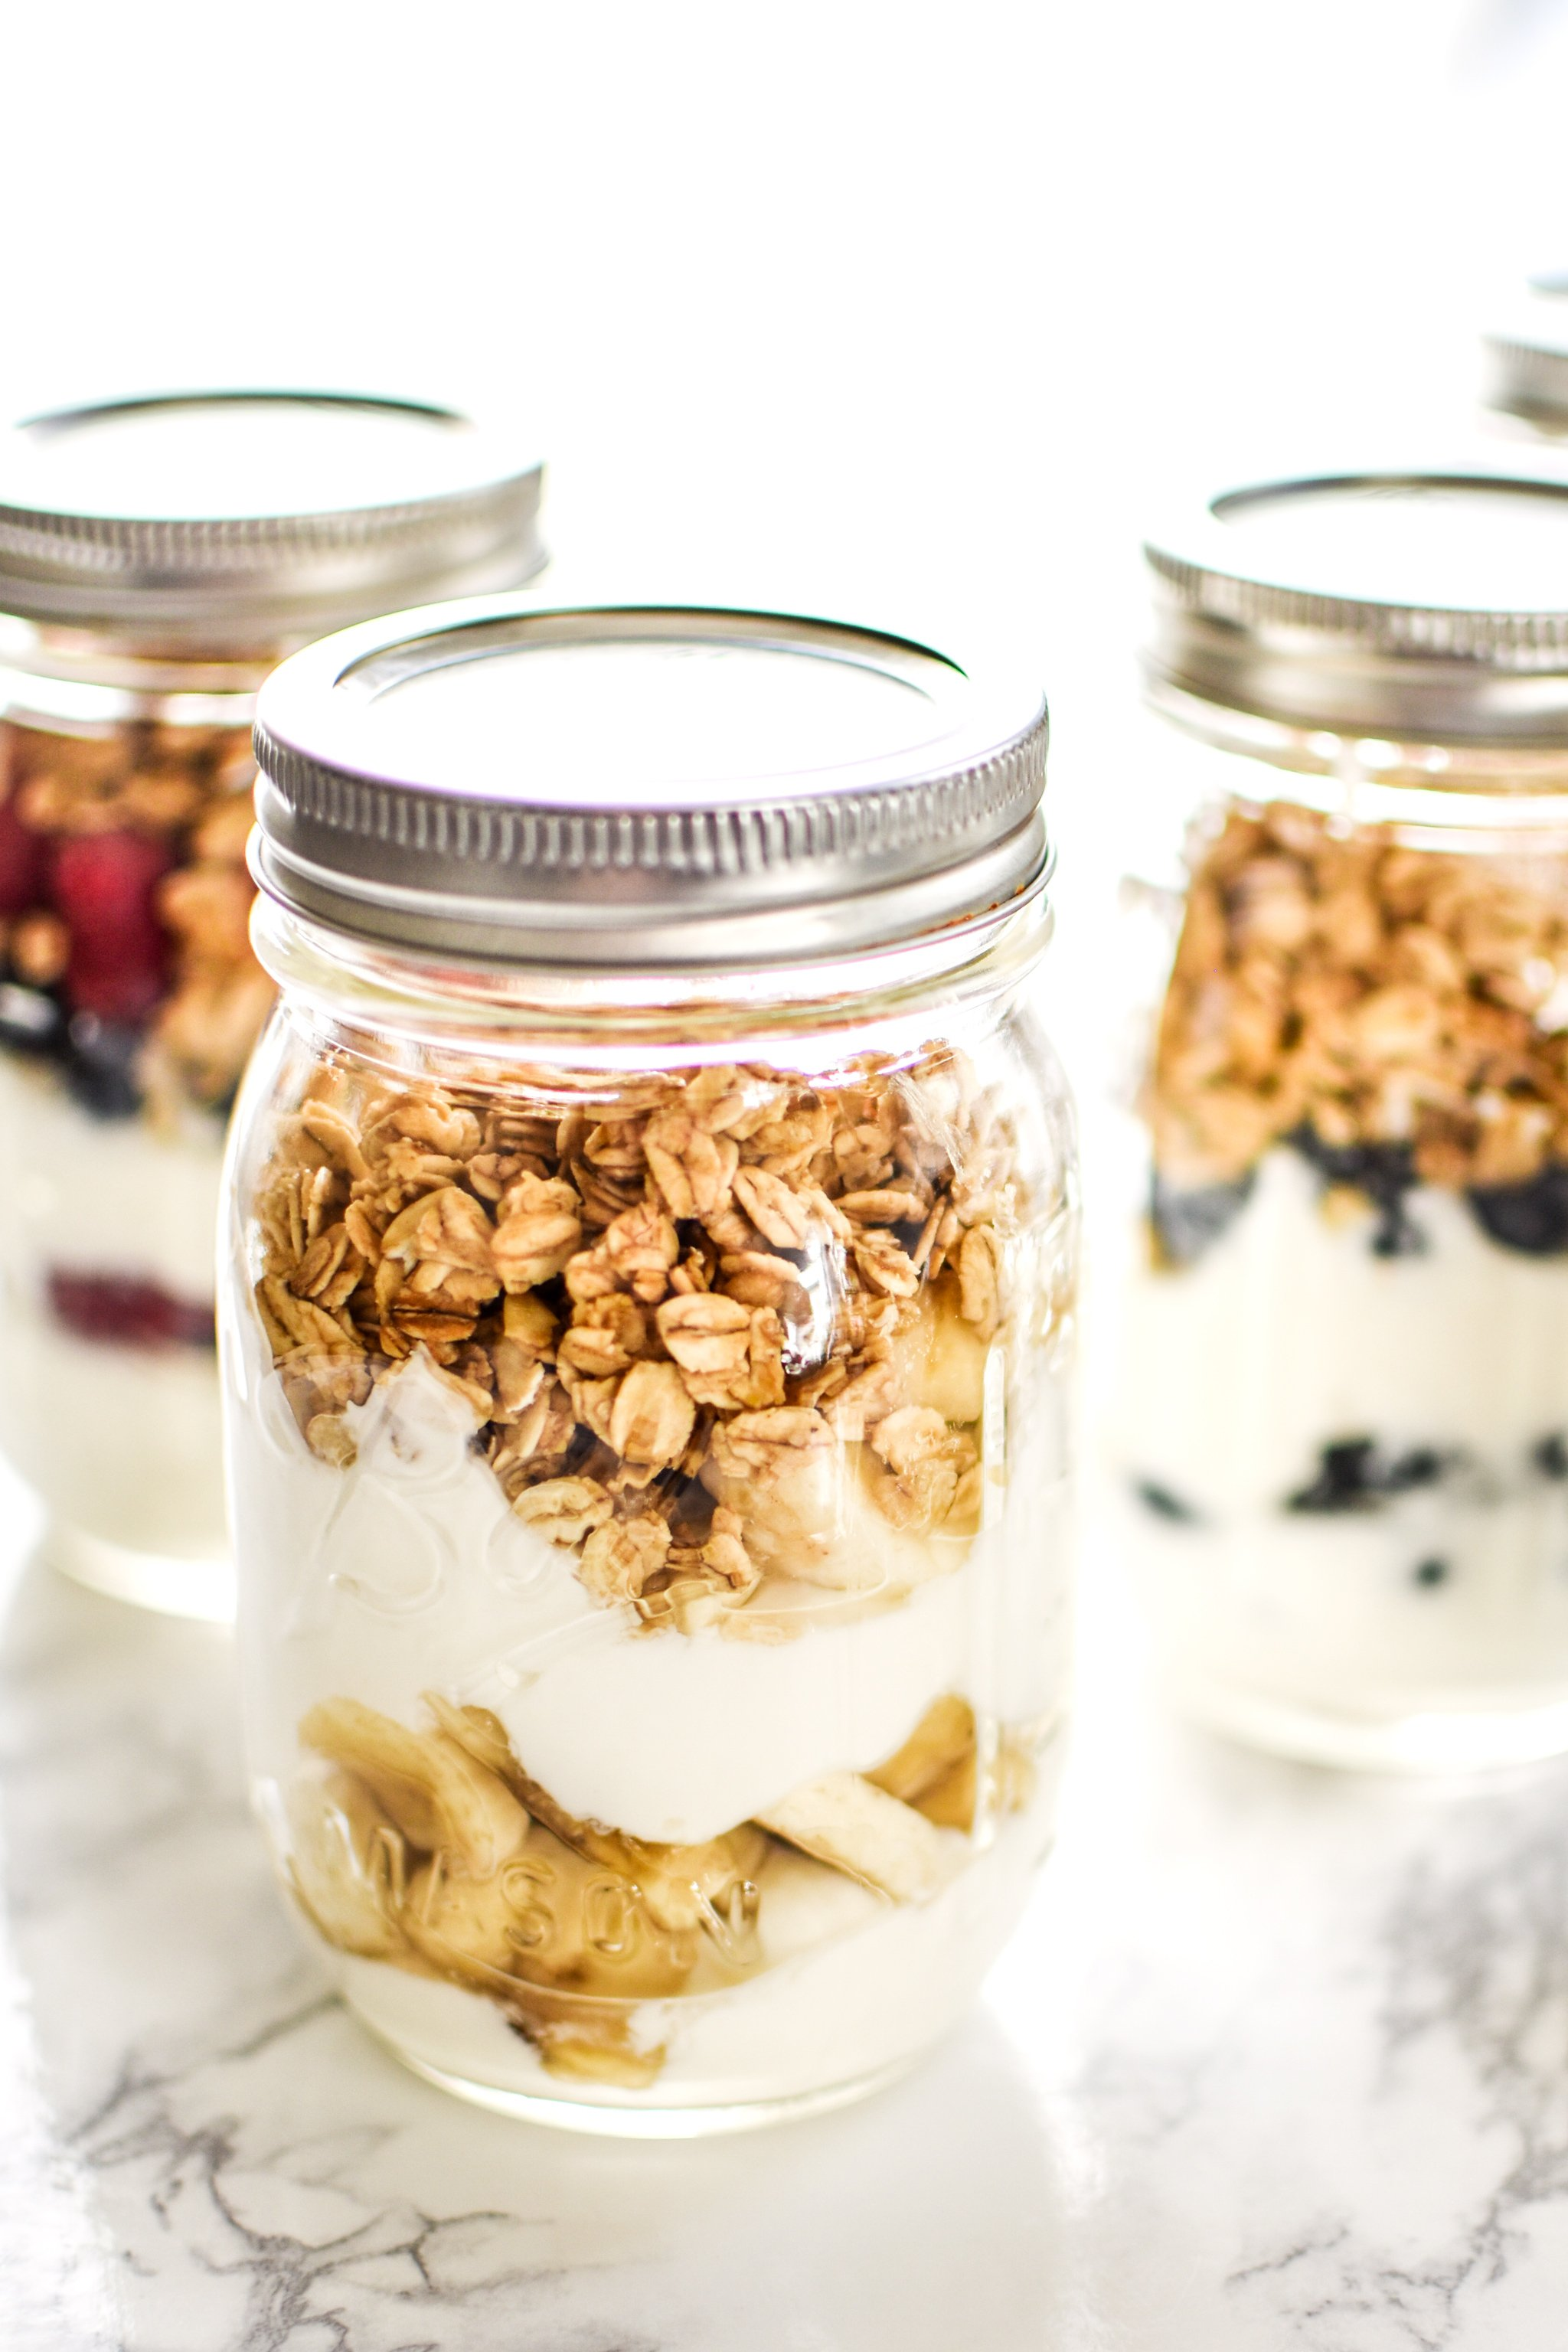 Mason jar yogurt parfaits are a great meal prep idea for hot weather.